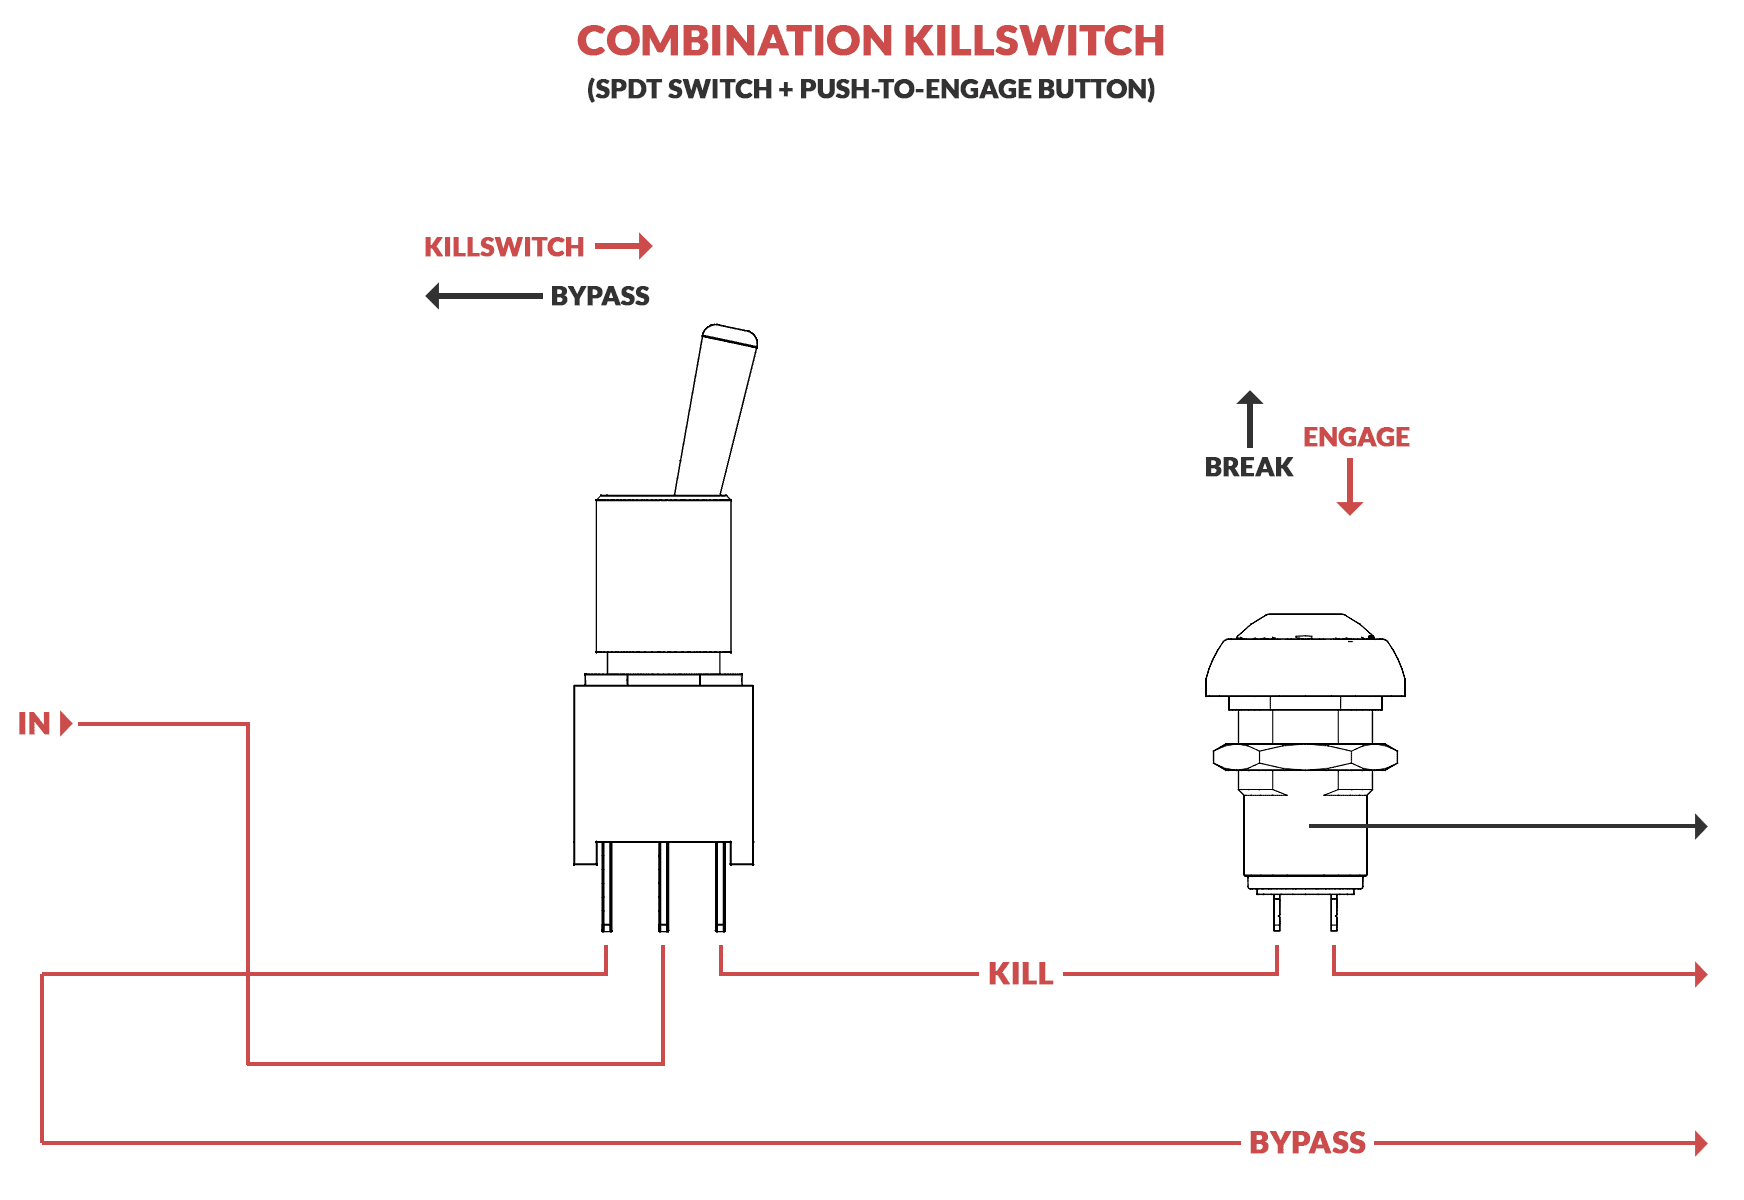 How to build a killswitch for your guitar electric herald a killswitch circuit modification for electric guitars that combines an spdt switch and an no momentary asfbconference2016 Image collections